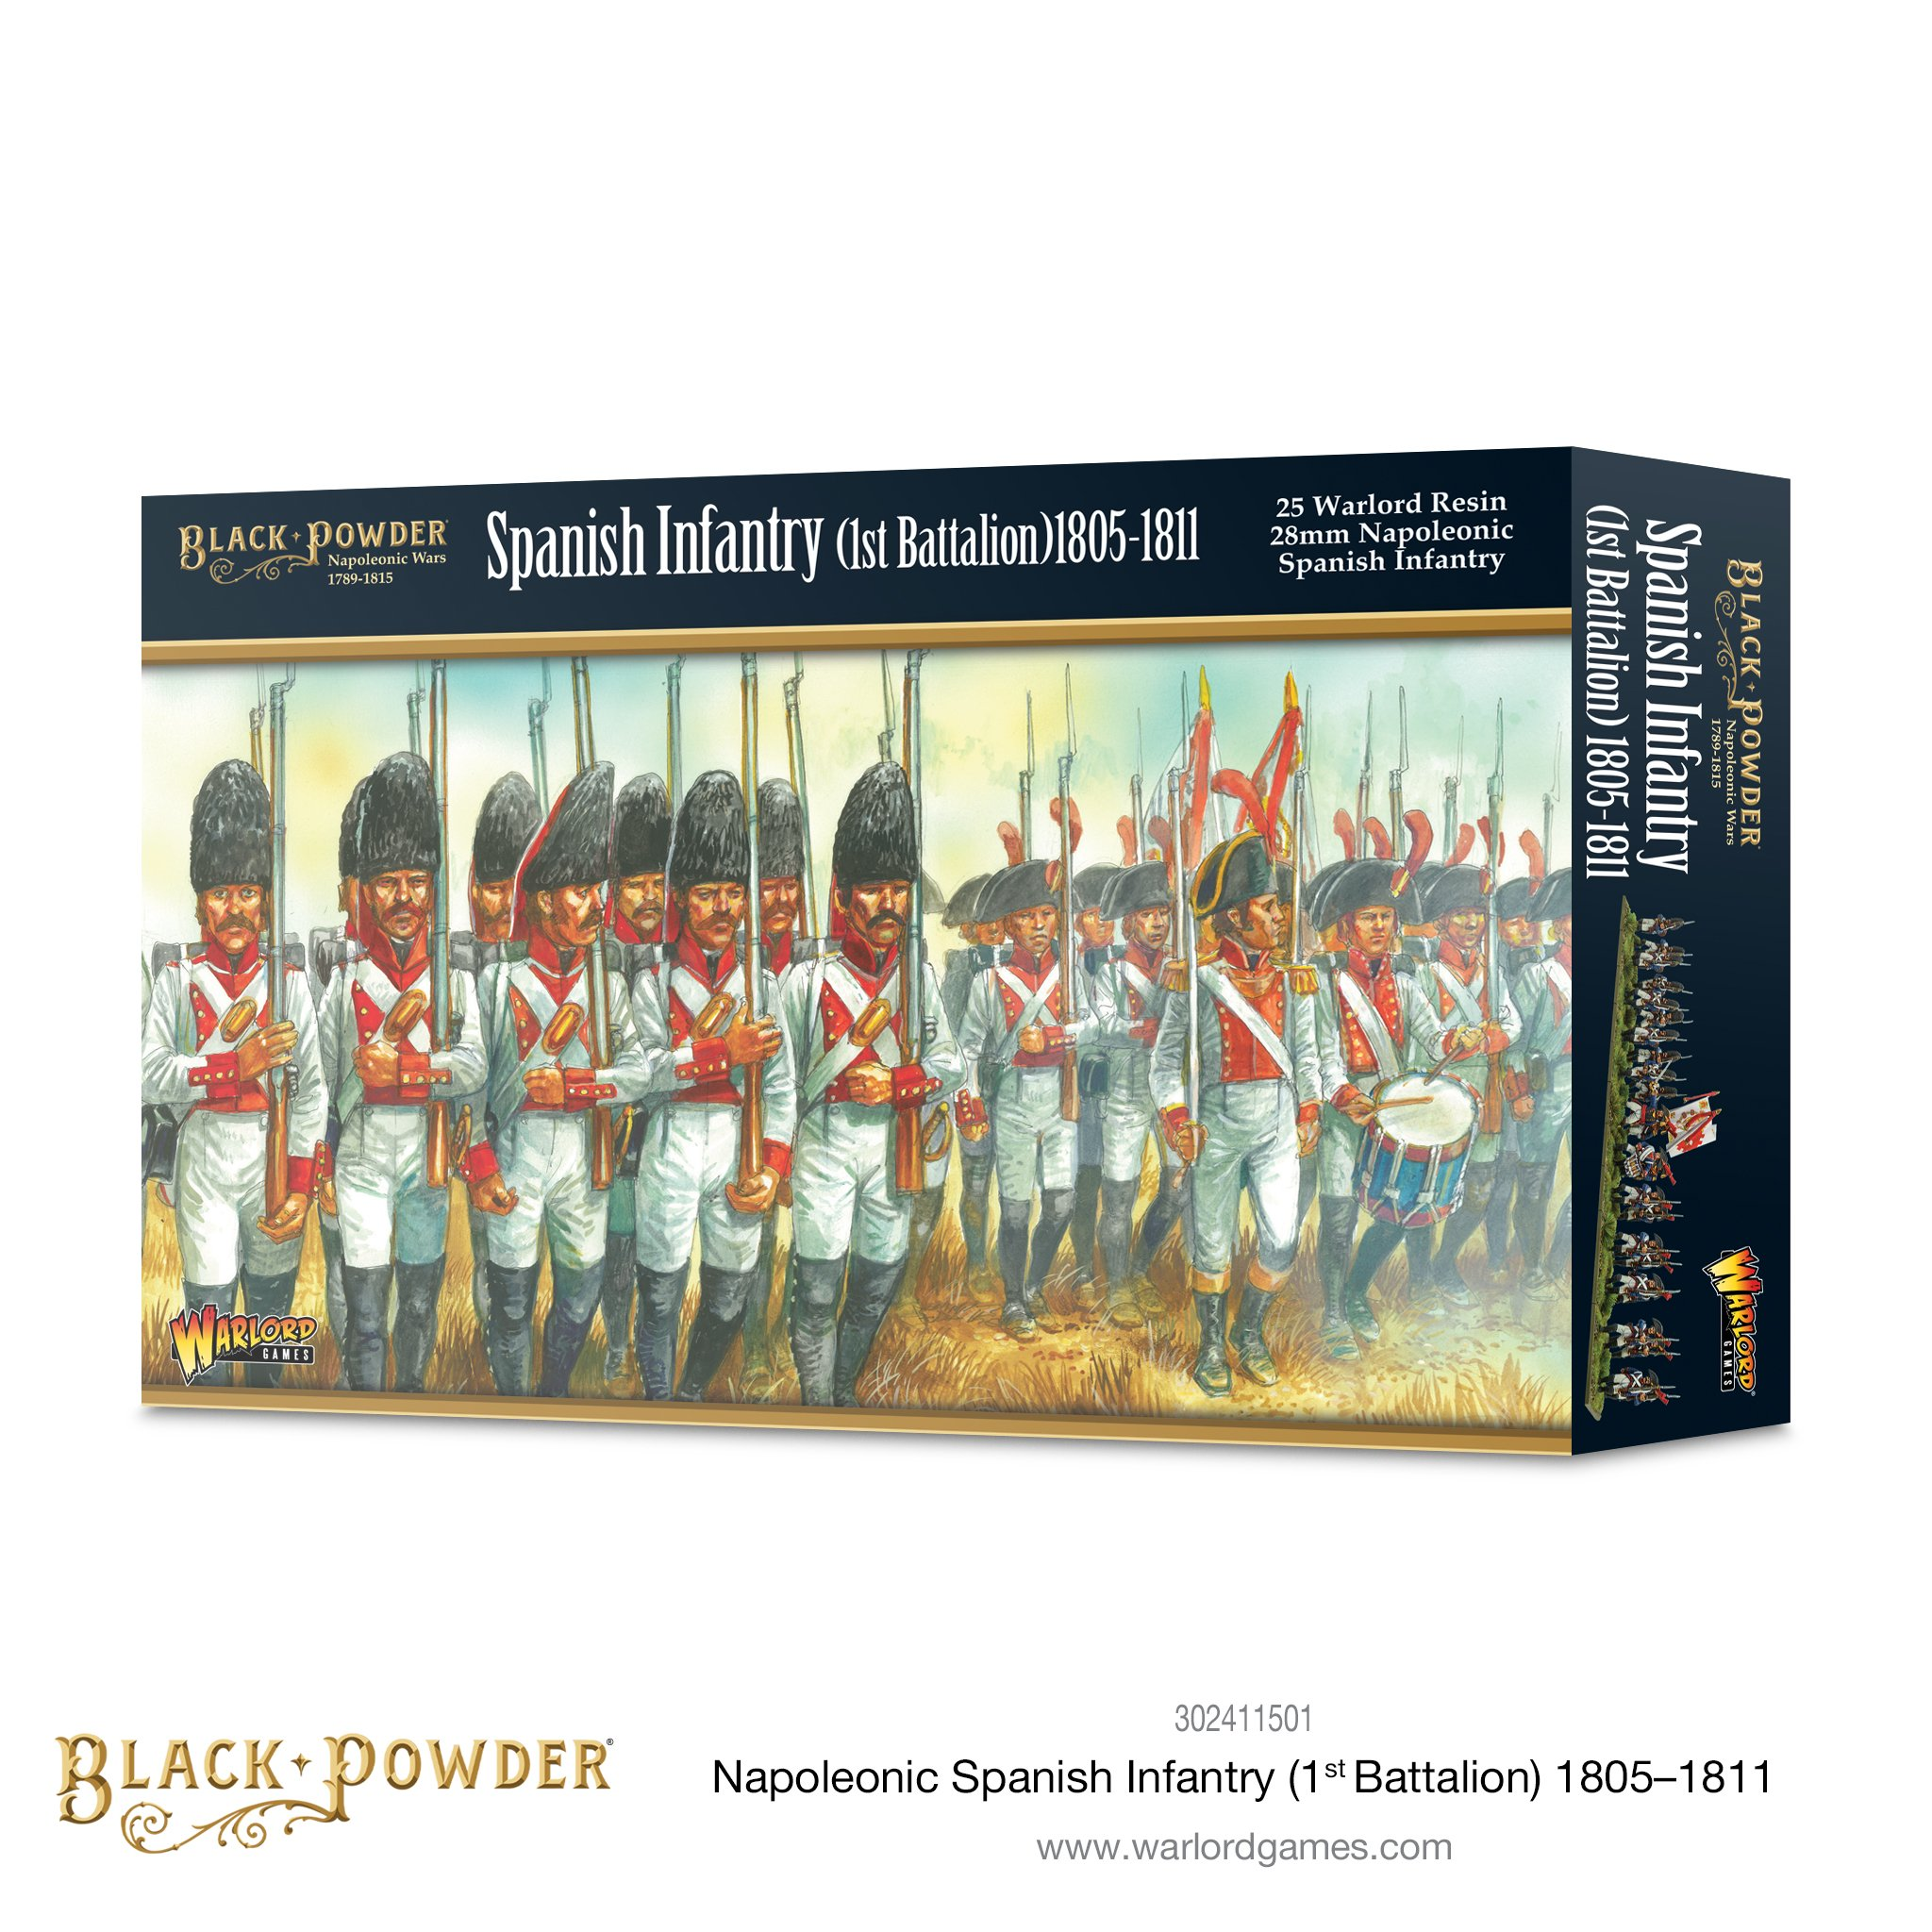 Black Powder Napoleonic Spanish Infantry (1st Battalion) 1805-1811